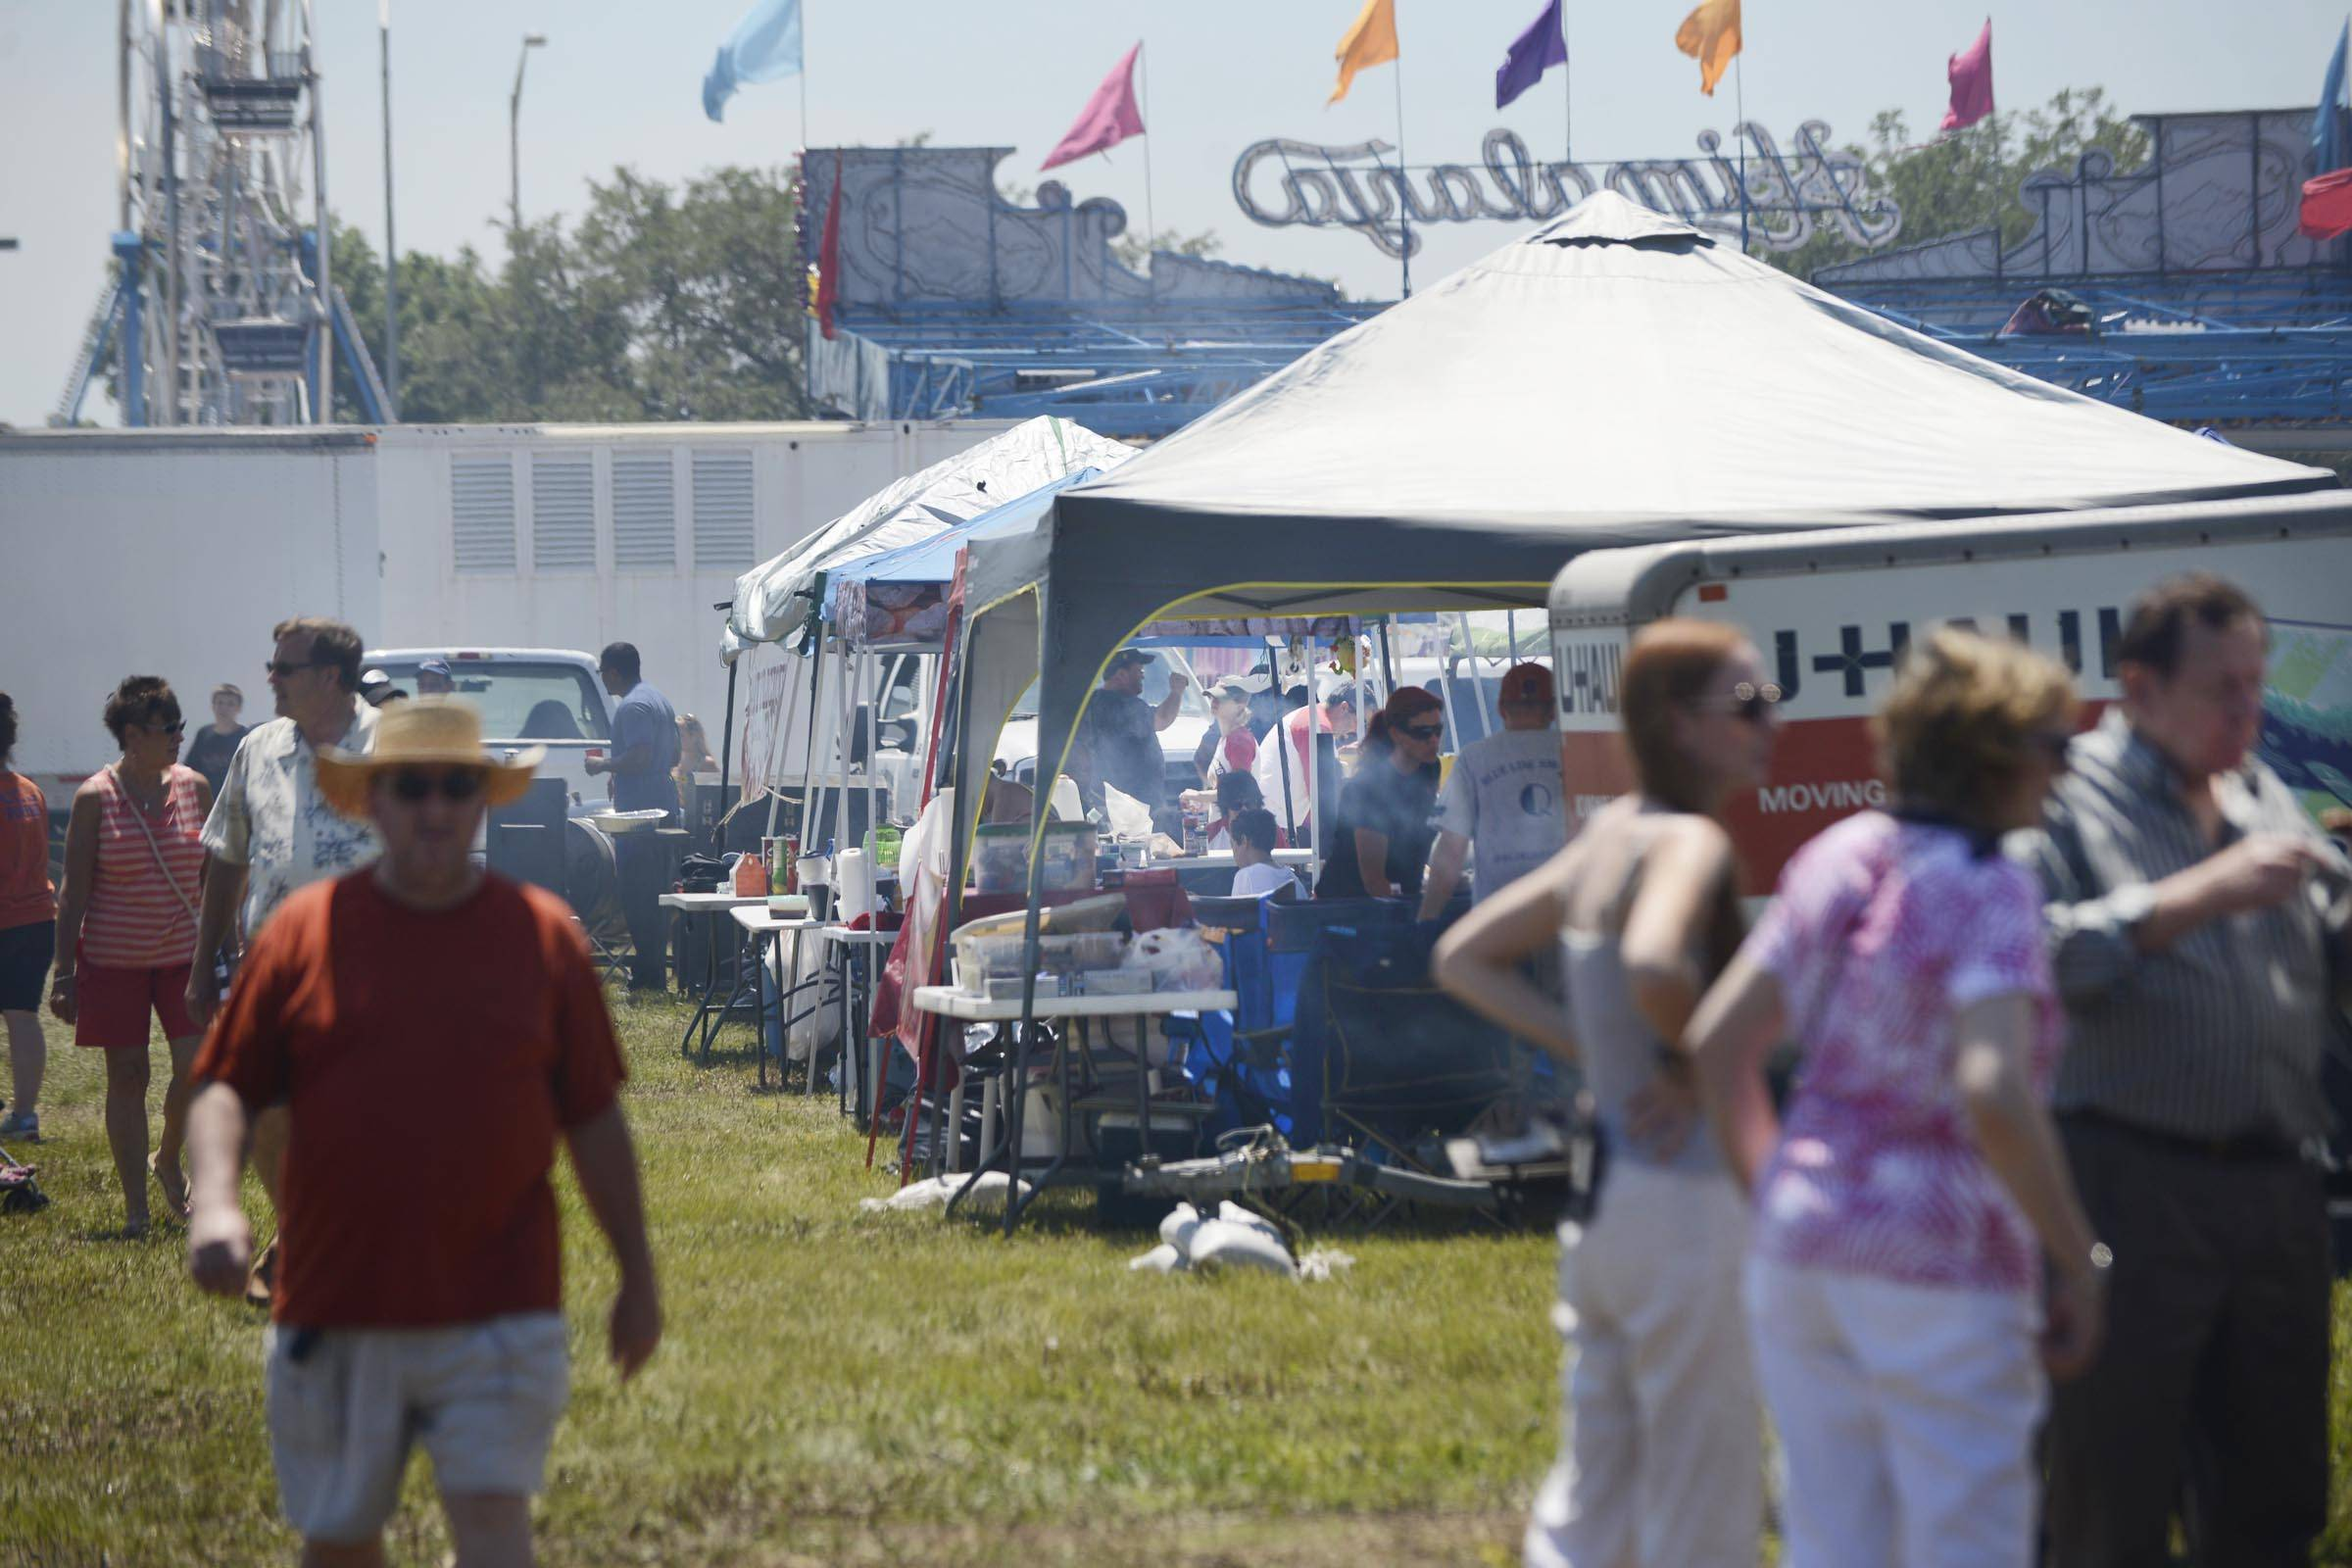 BBQ fans wander the Firin' Up The Fox BBQ Competition and Festival in St. Charles on Sunday.